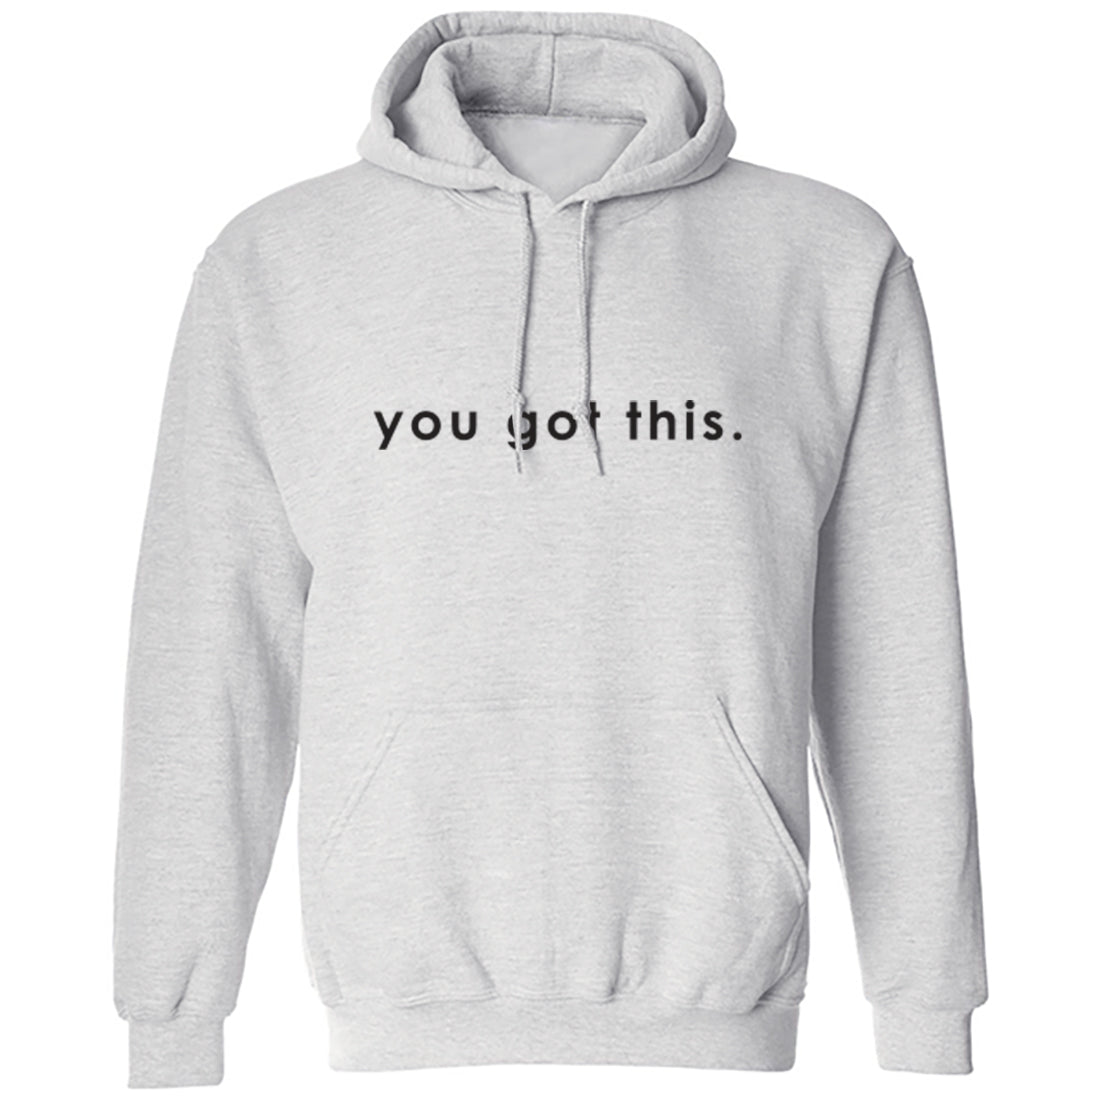 You Got This Unisex Hoodie K2446 - Illustrated Identity Ltd.